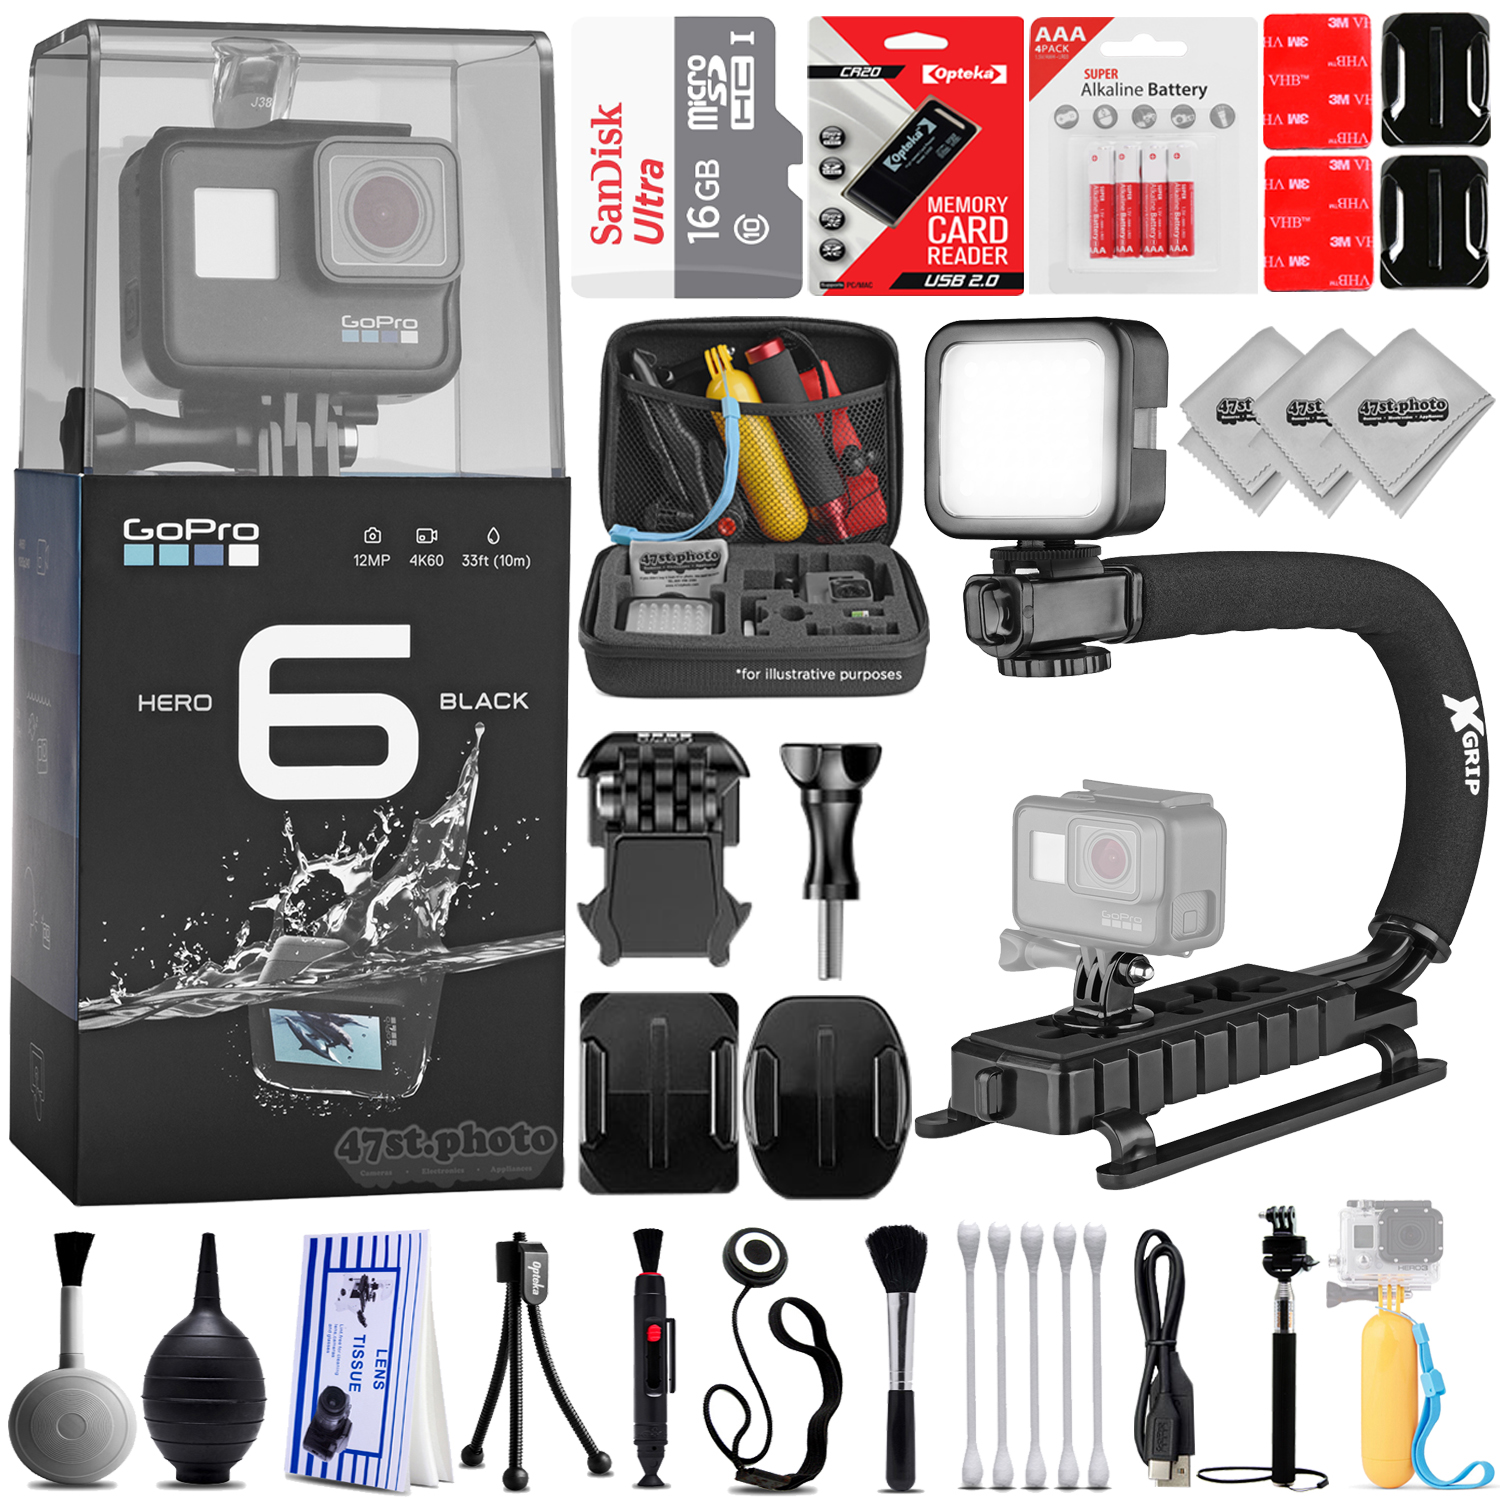 GoPro Hero 6 Black 12MP 4K Digital Camera w/ 30PC Sport Action Bundle / 4PC Curved Mount Kit - Rotating 360 Degree Mount - Tripod Mount Adapter - Handlebar Mount - Suction Cup Window Mount & MUCH MORE